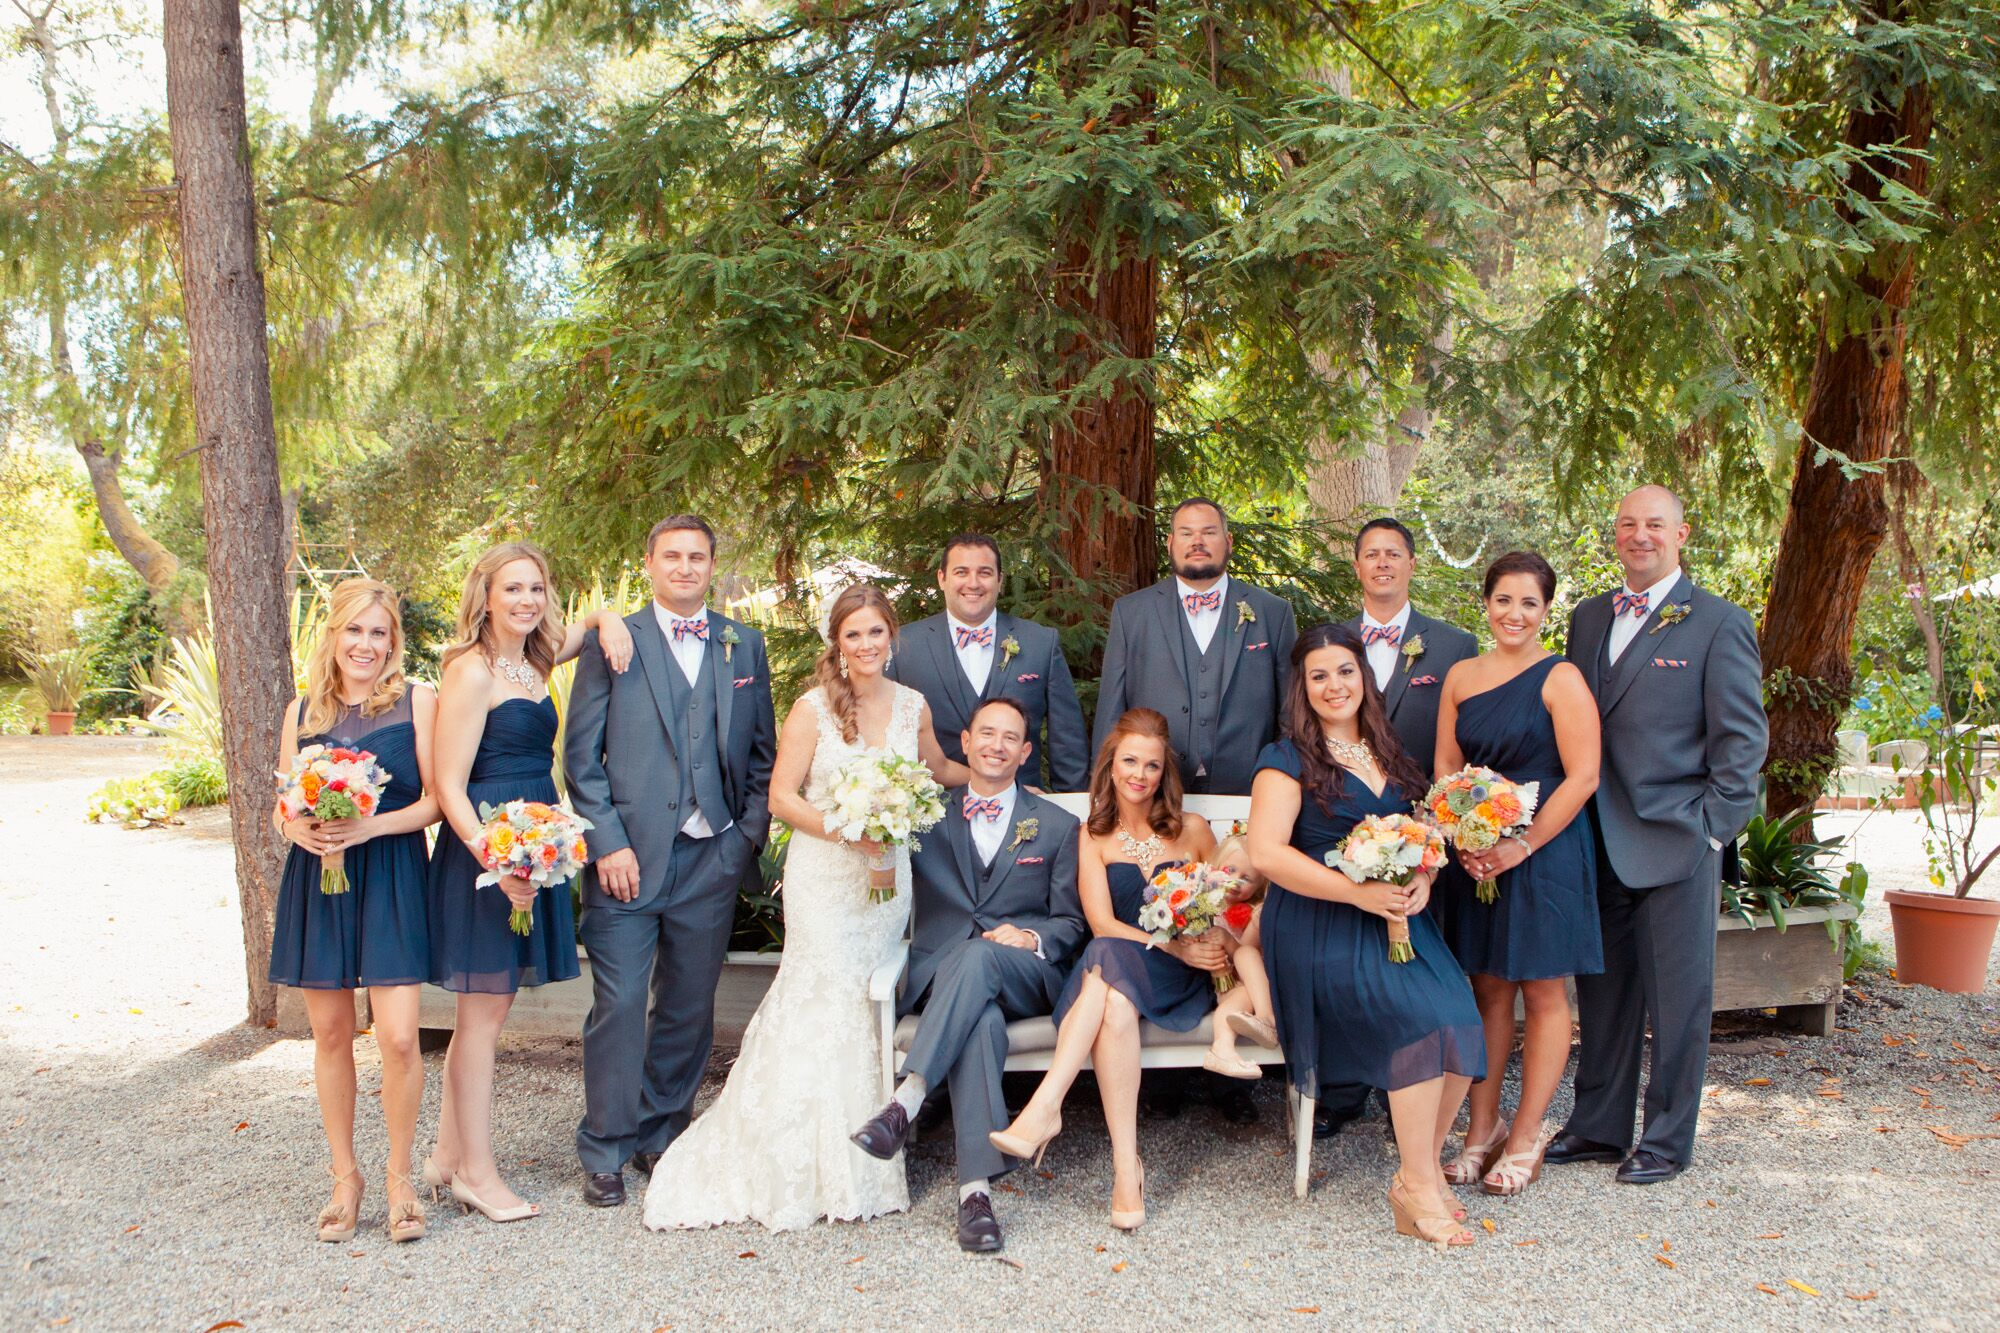 Navy Blue and Gray Wedding Attire